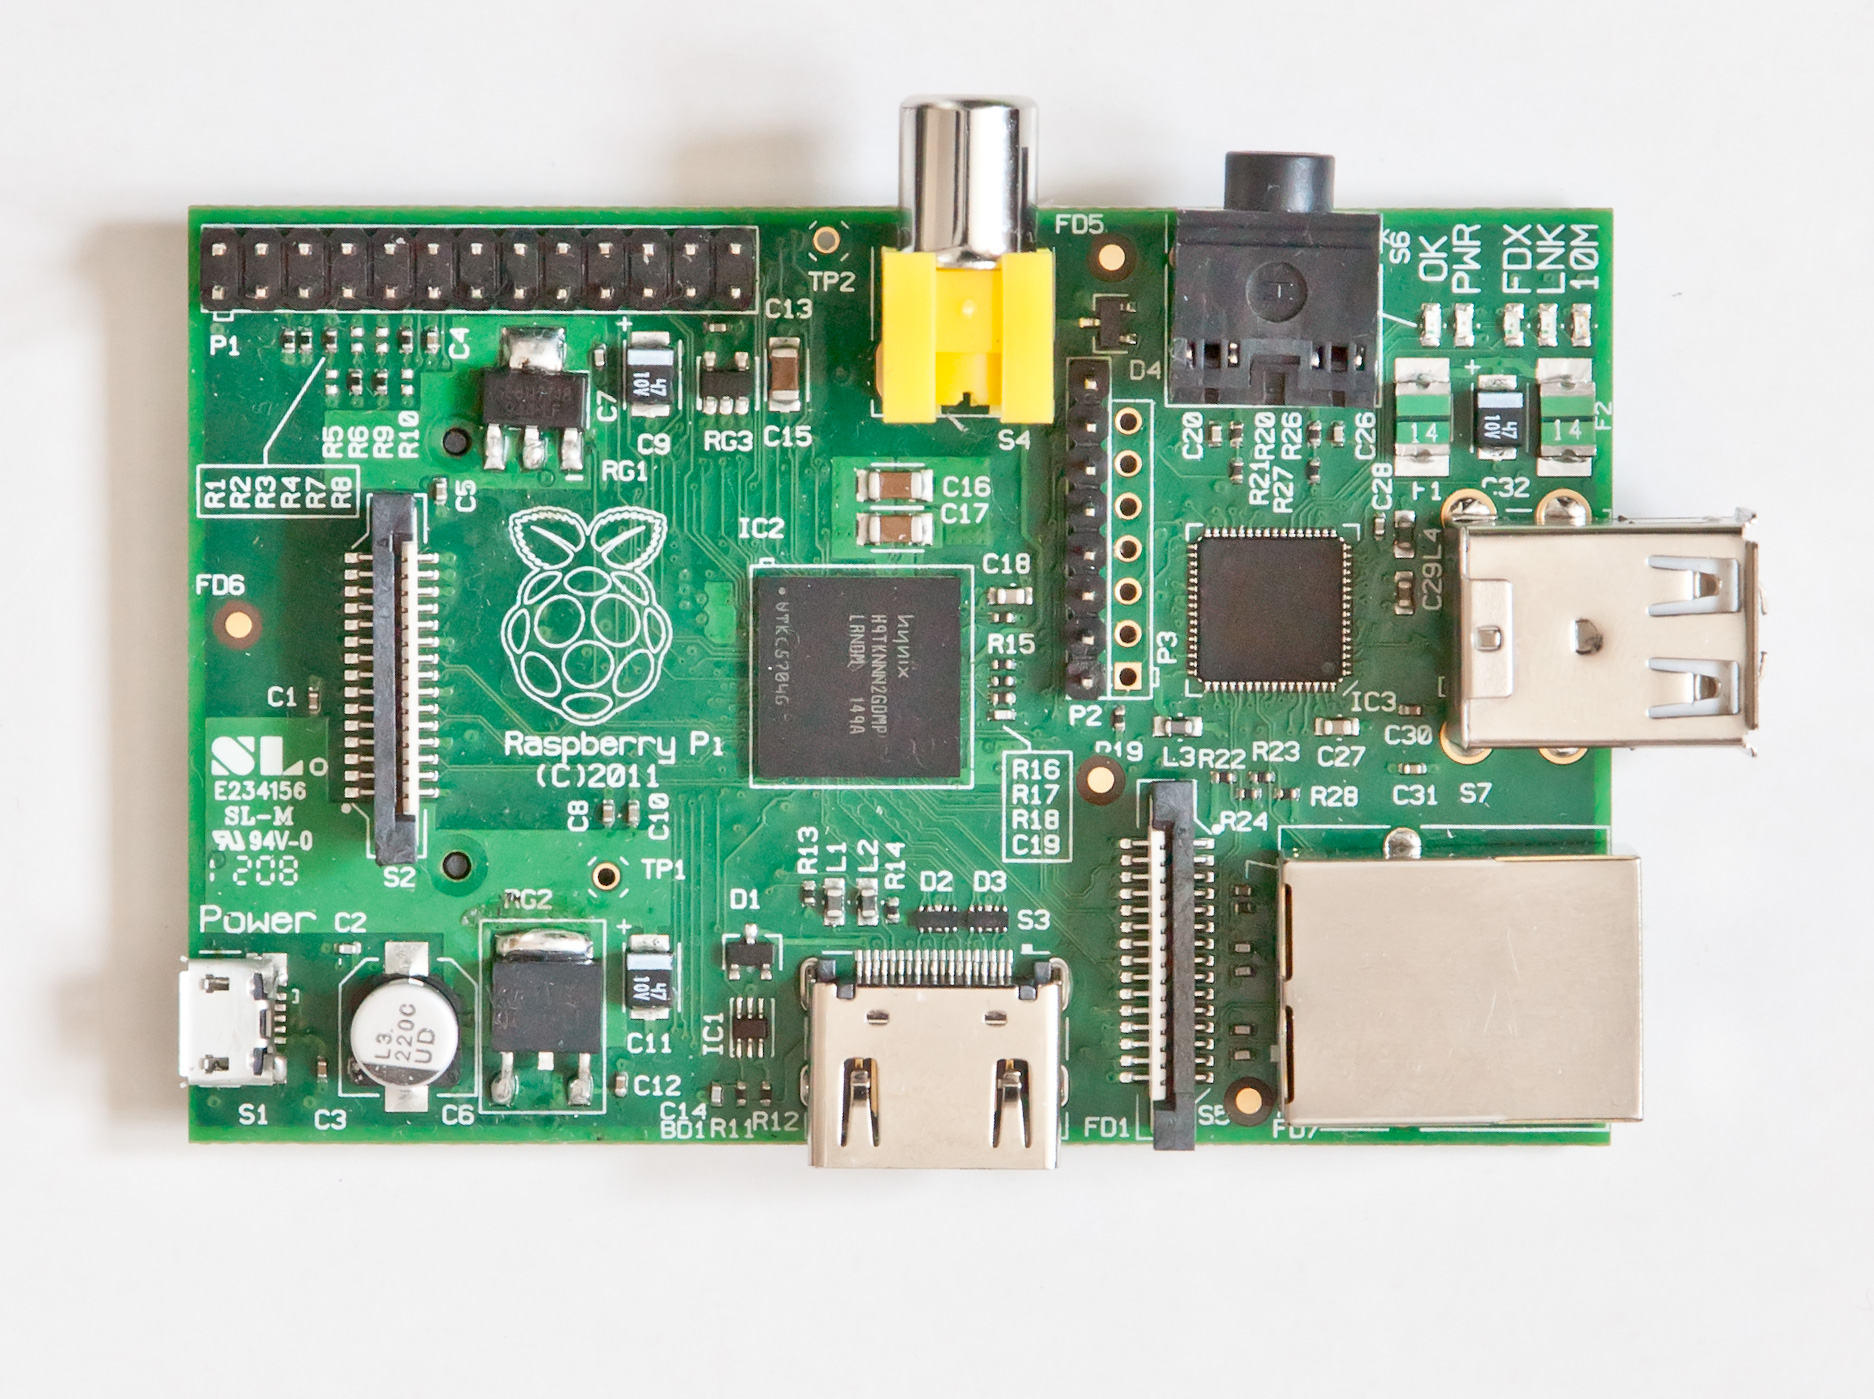 Top of Raspberry Pi